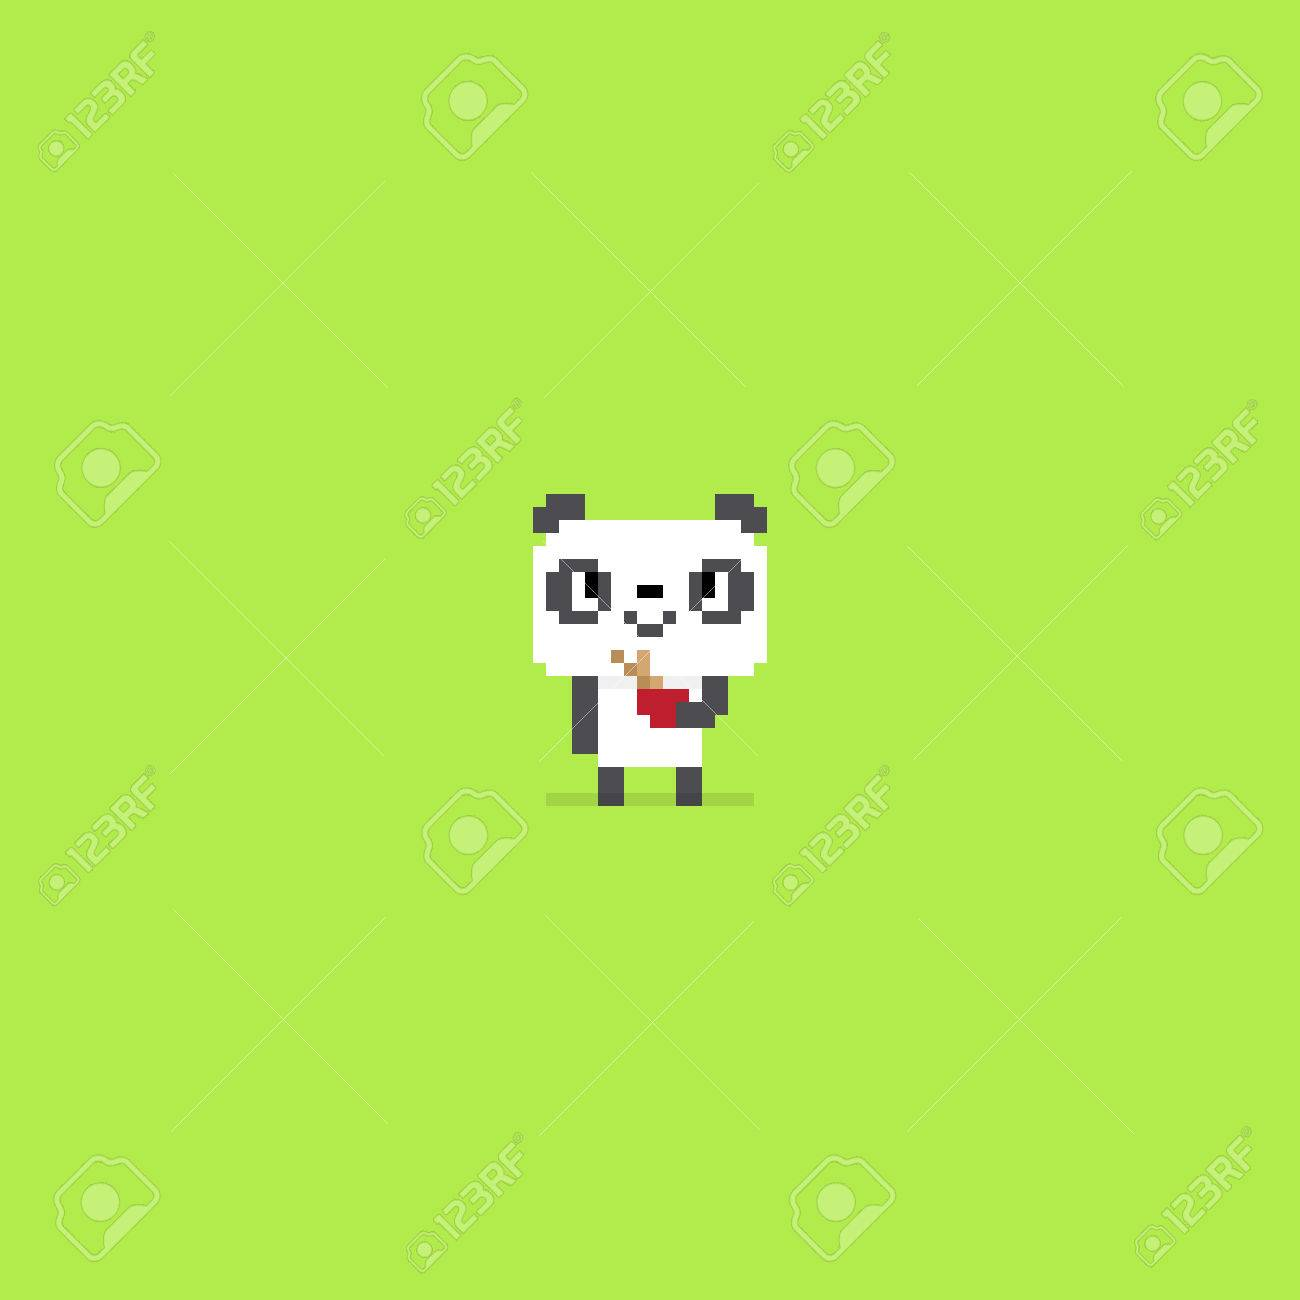 Pixel Art Panda Smiling And Holding A Bowl With Bamboo Sticks